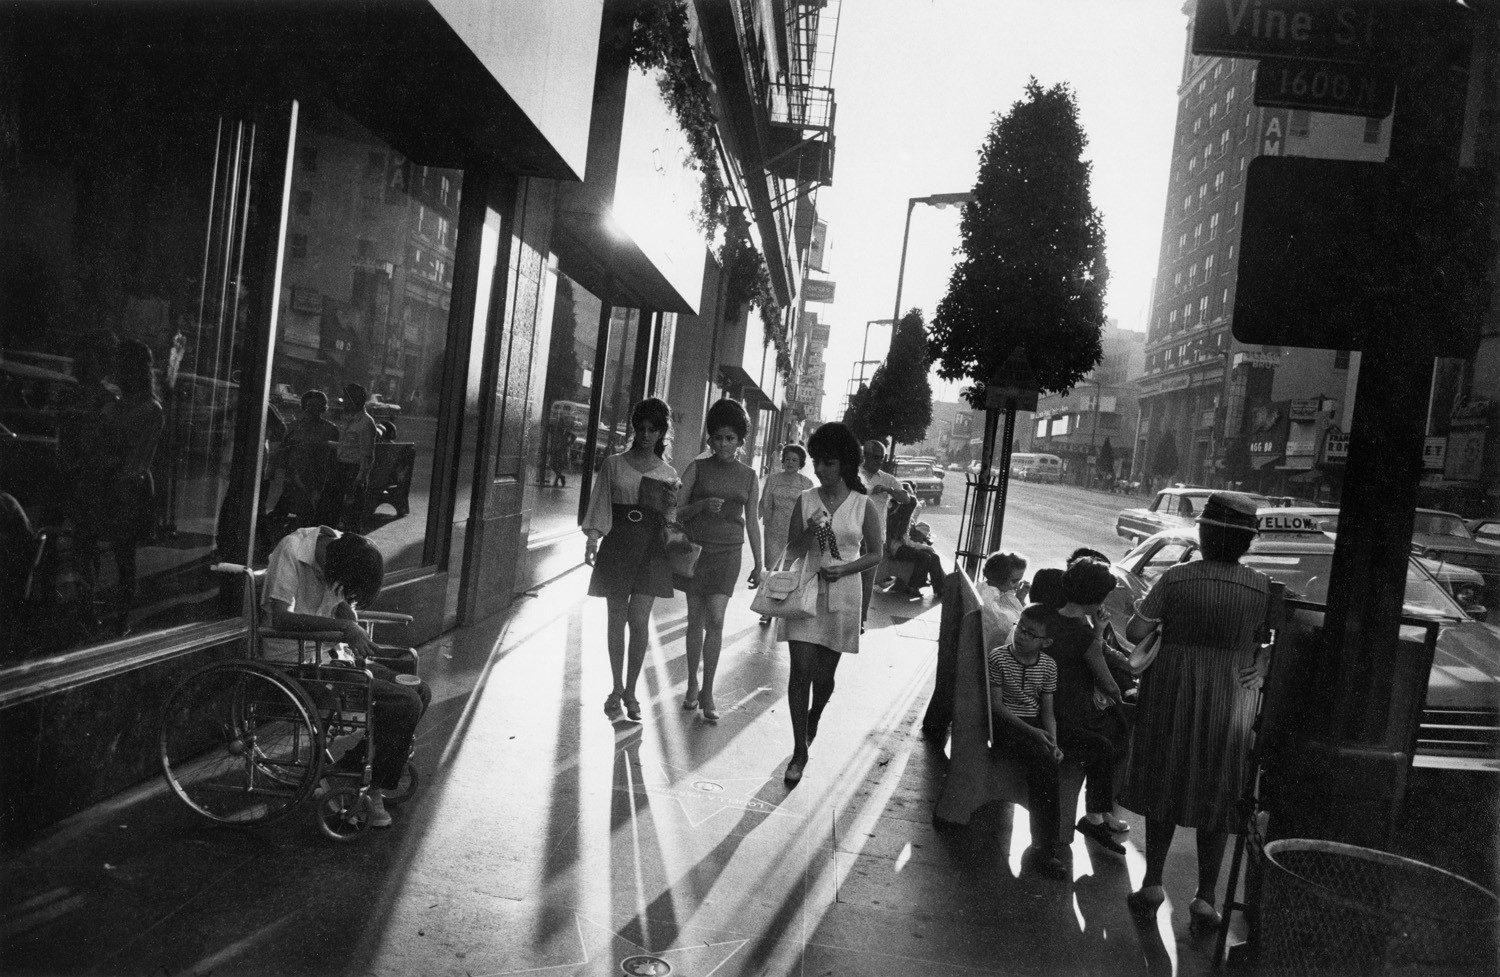 Garry Winogrand, Los Angeles, California, 1969